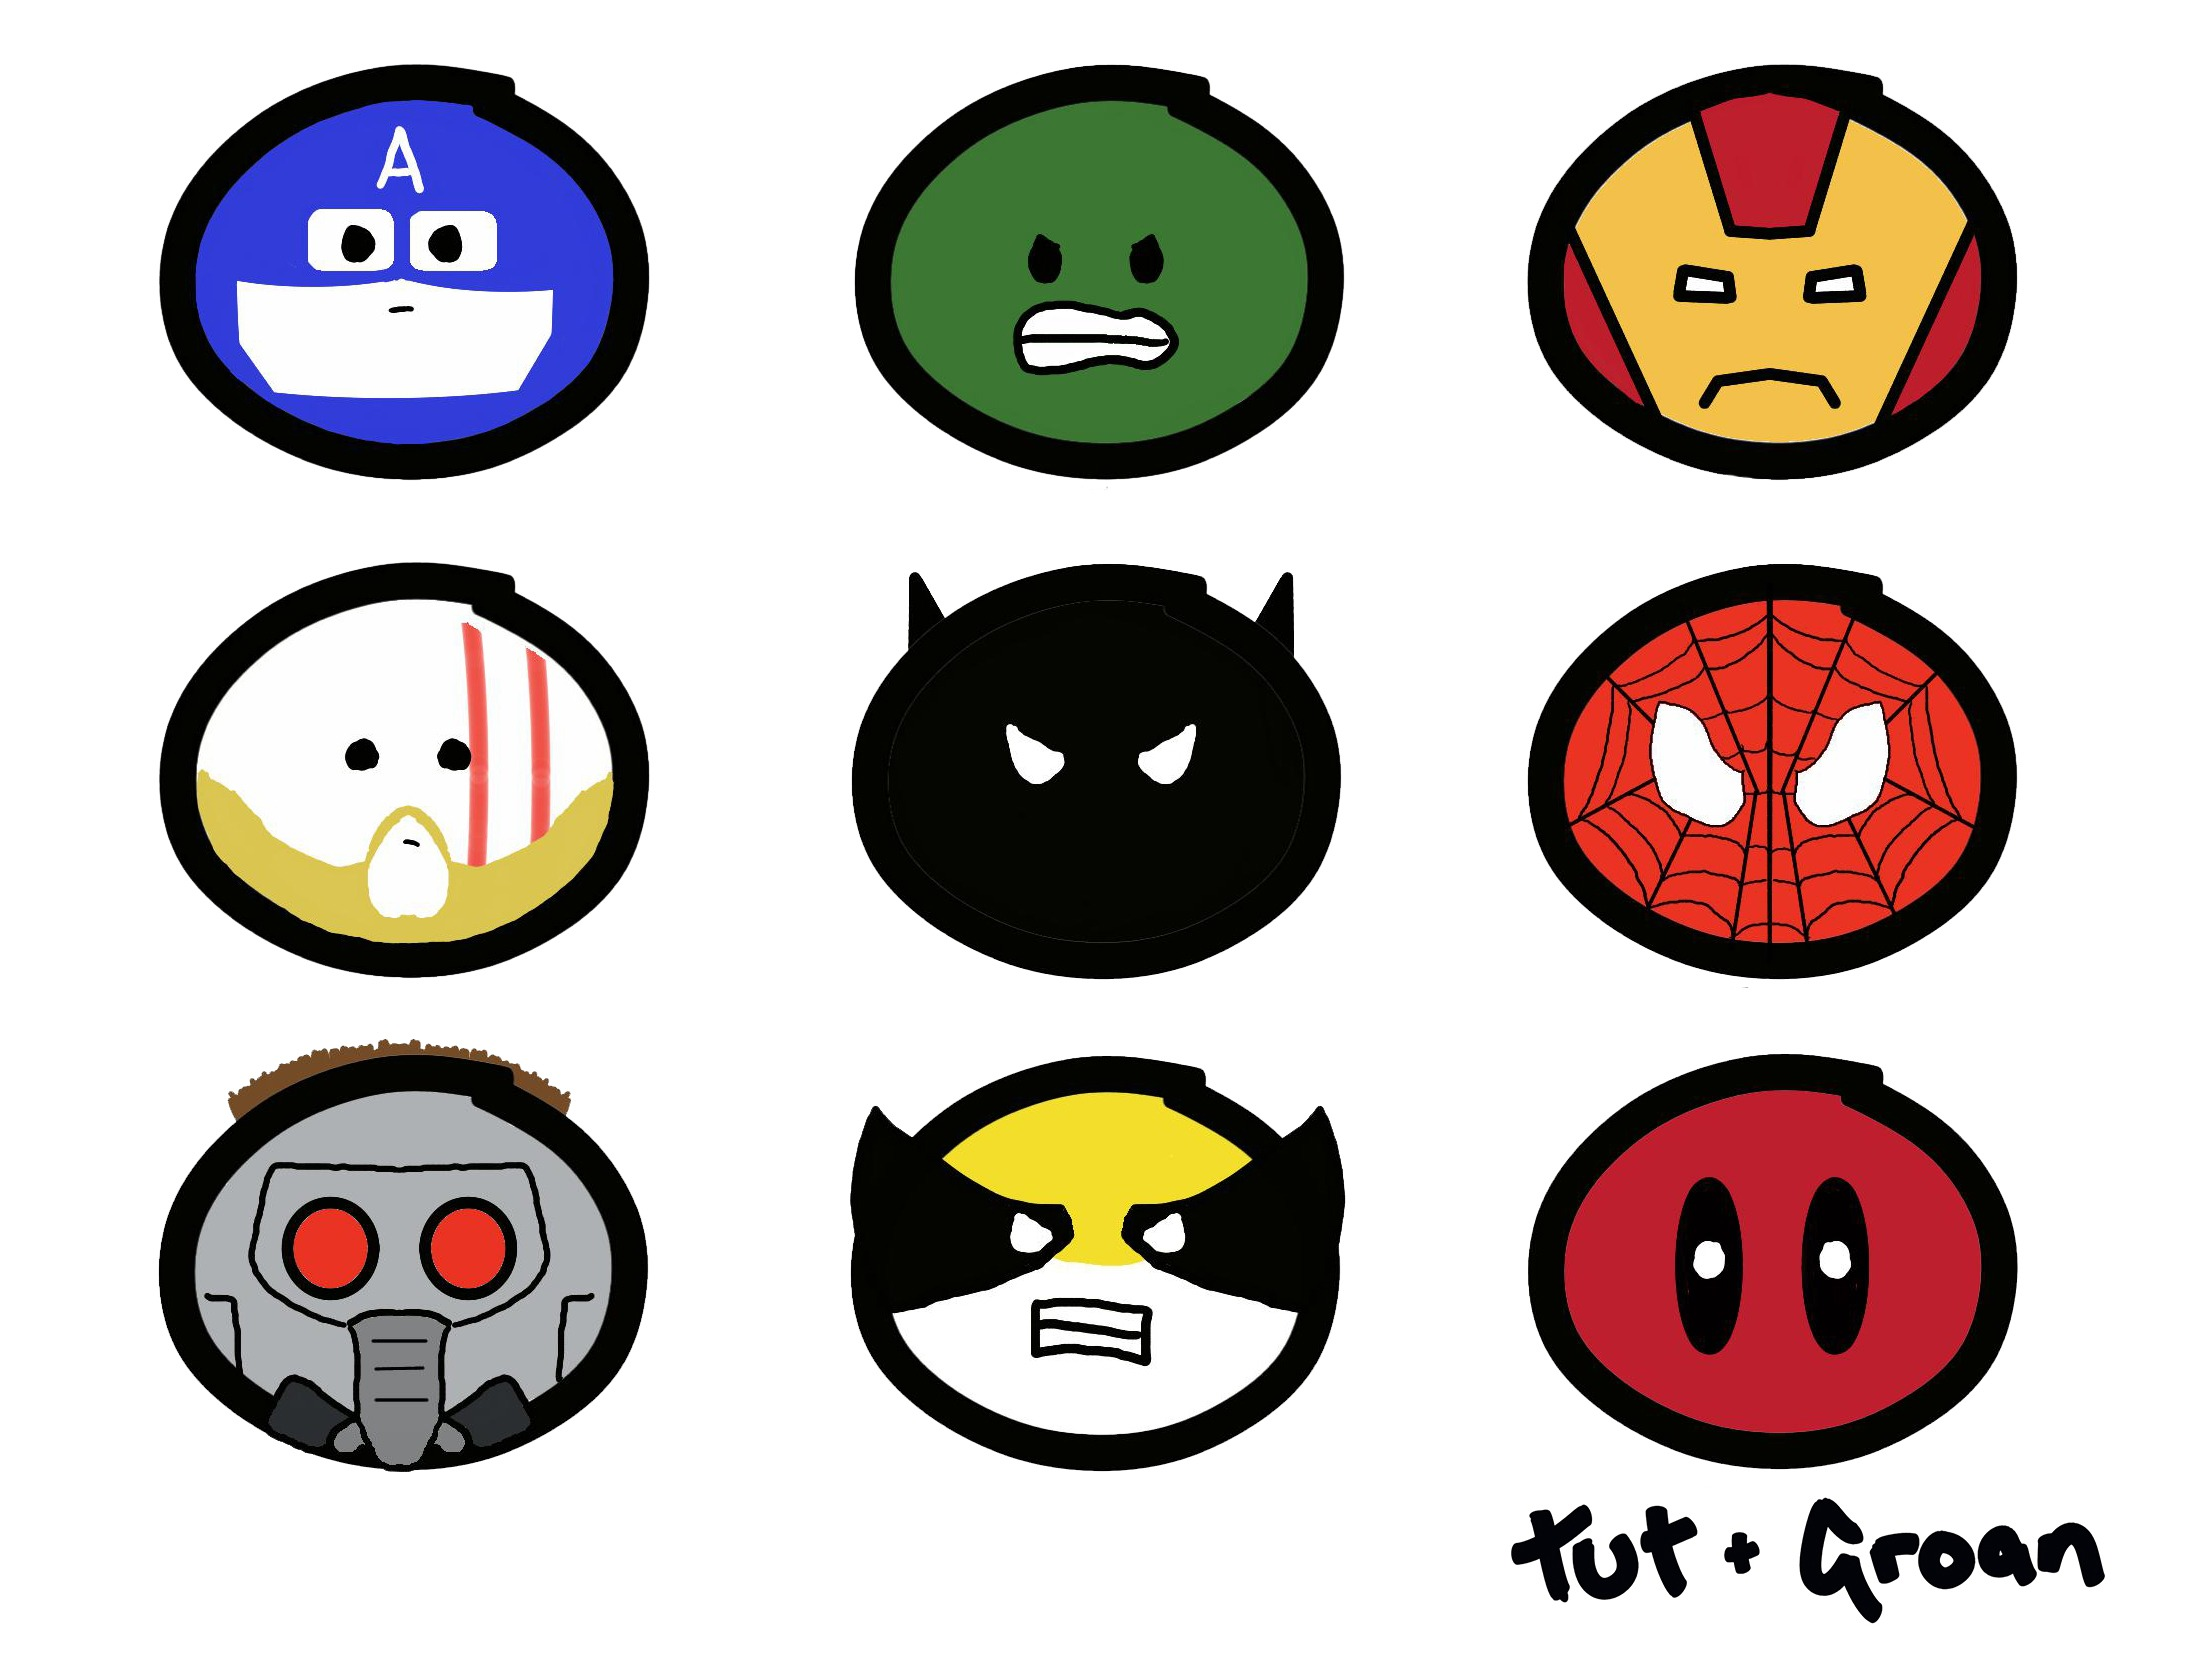 Tut and Groan Marvel Heroes collage